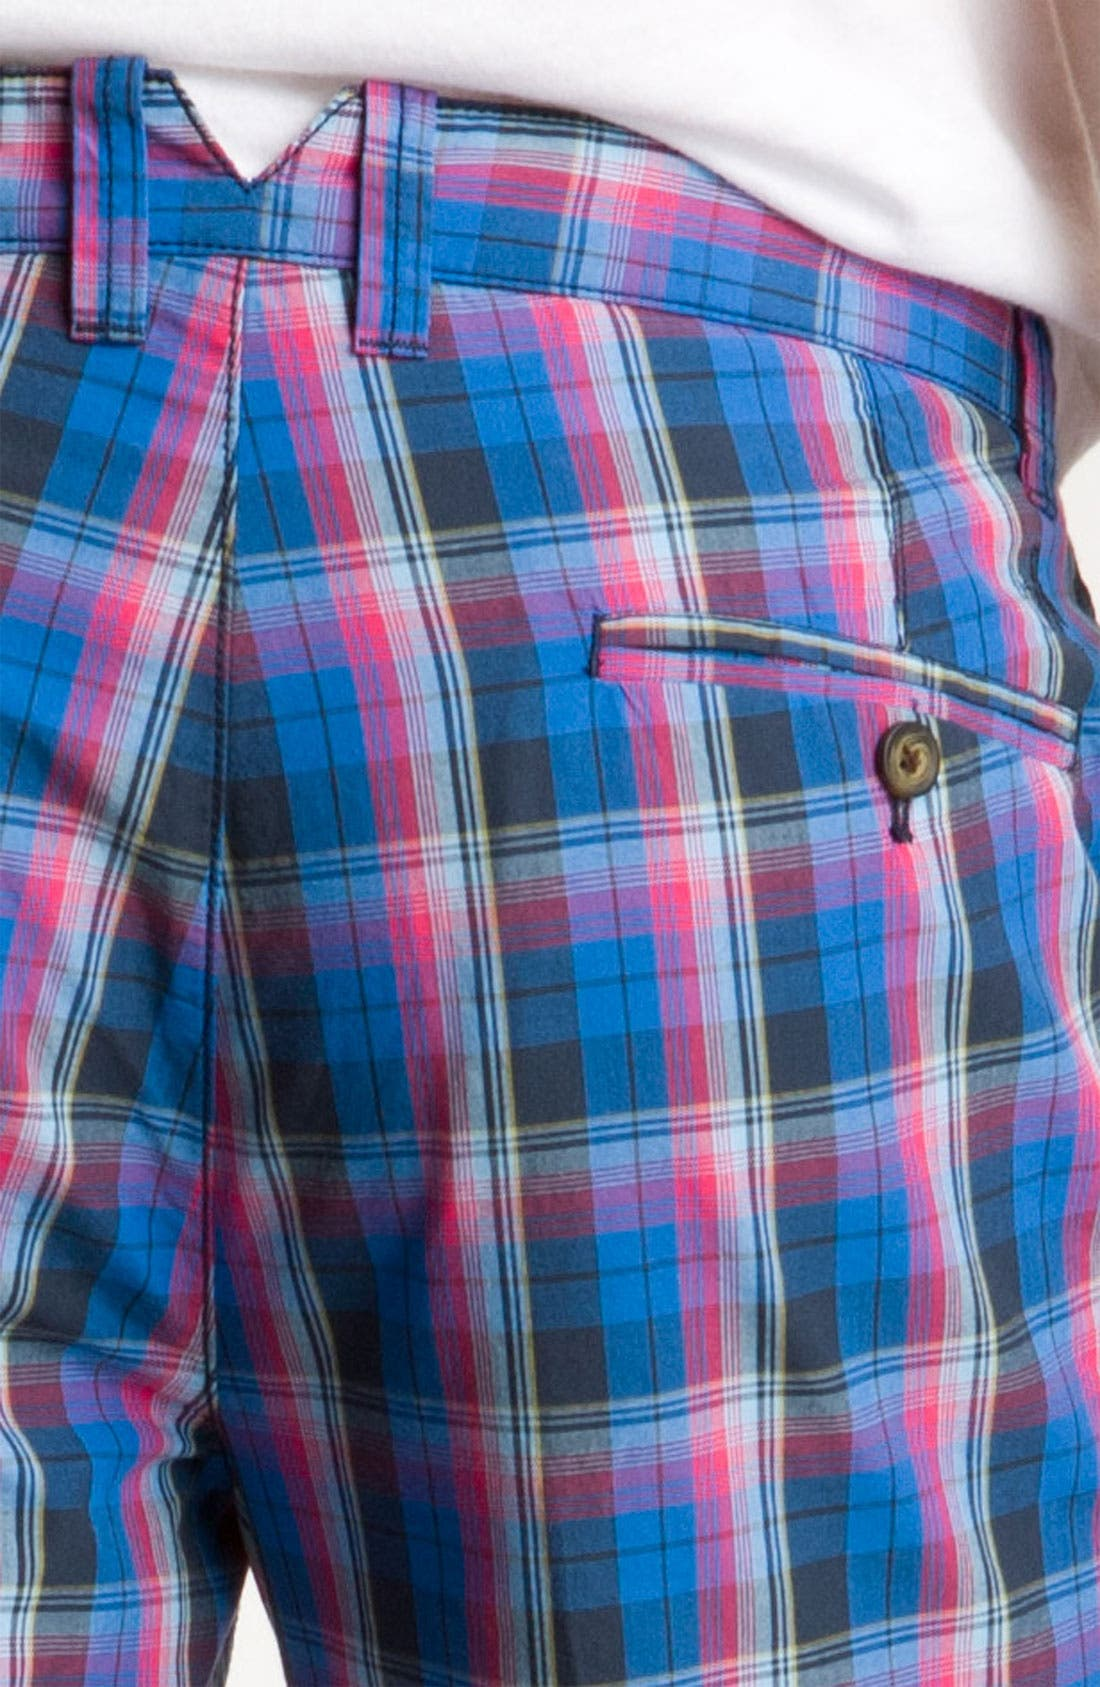 Alternate Image 3  - Original Penguin 'Berson' Plaid Shorts